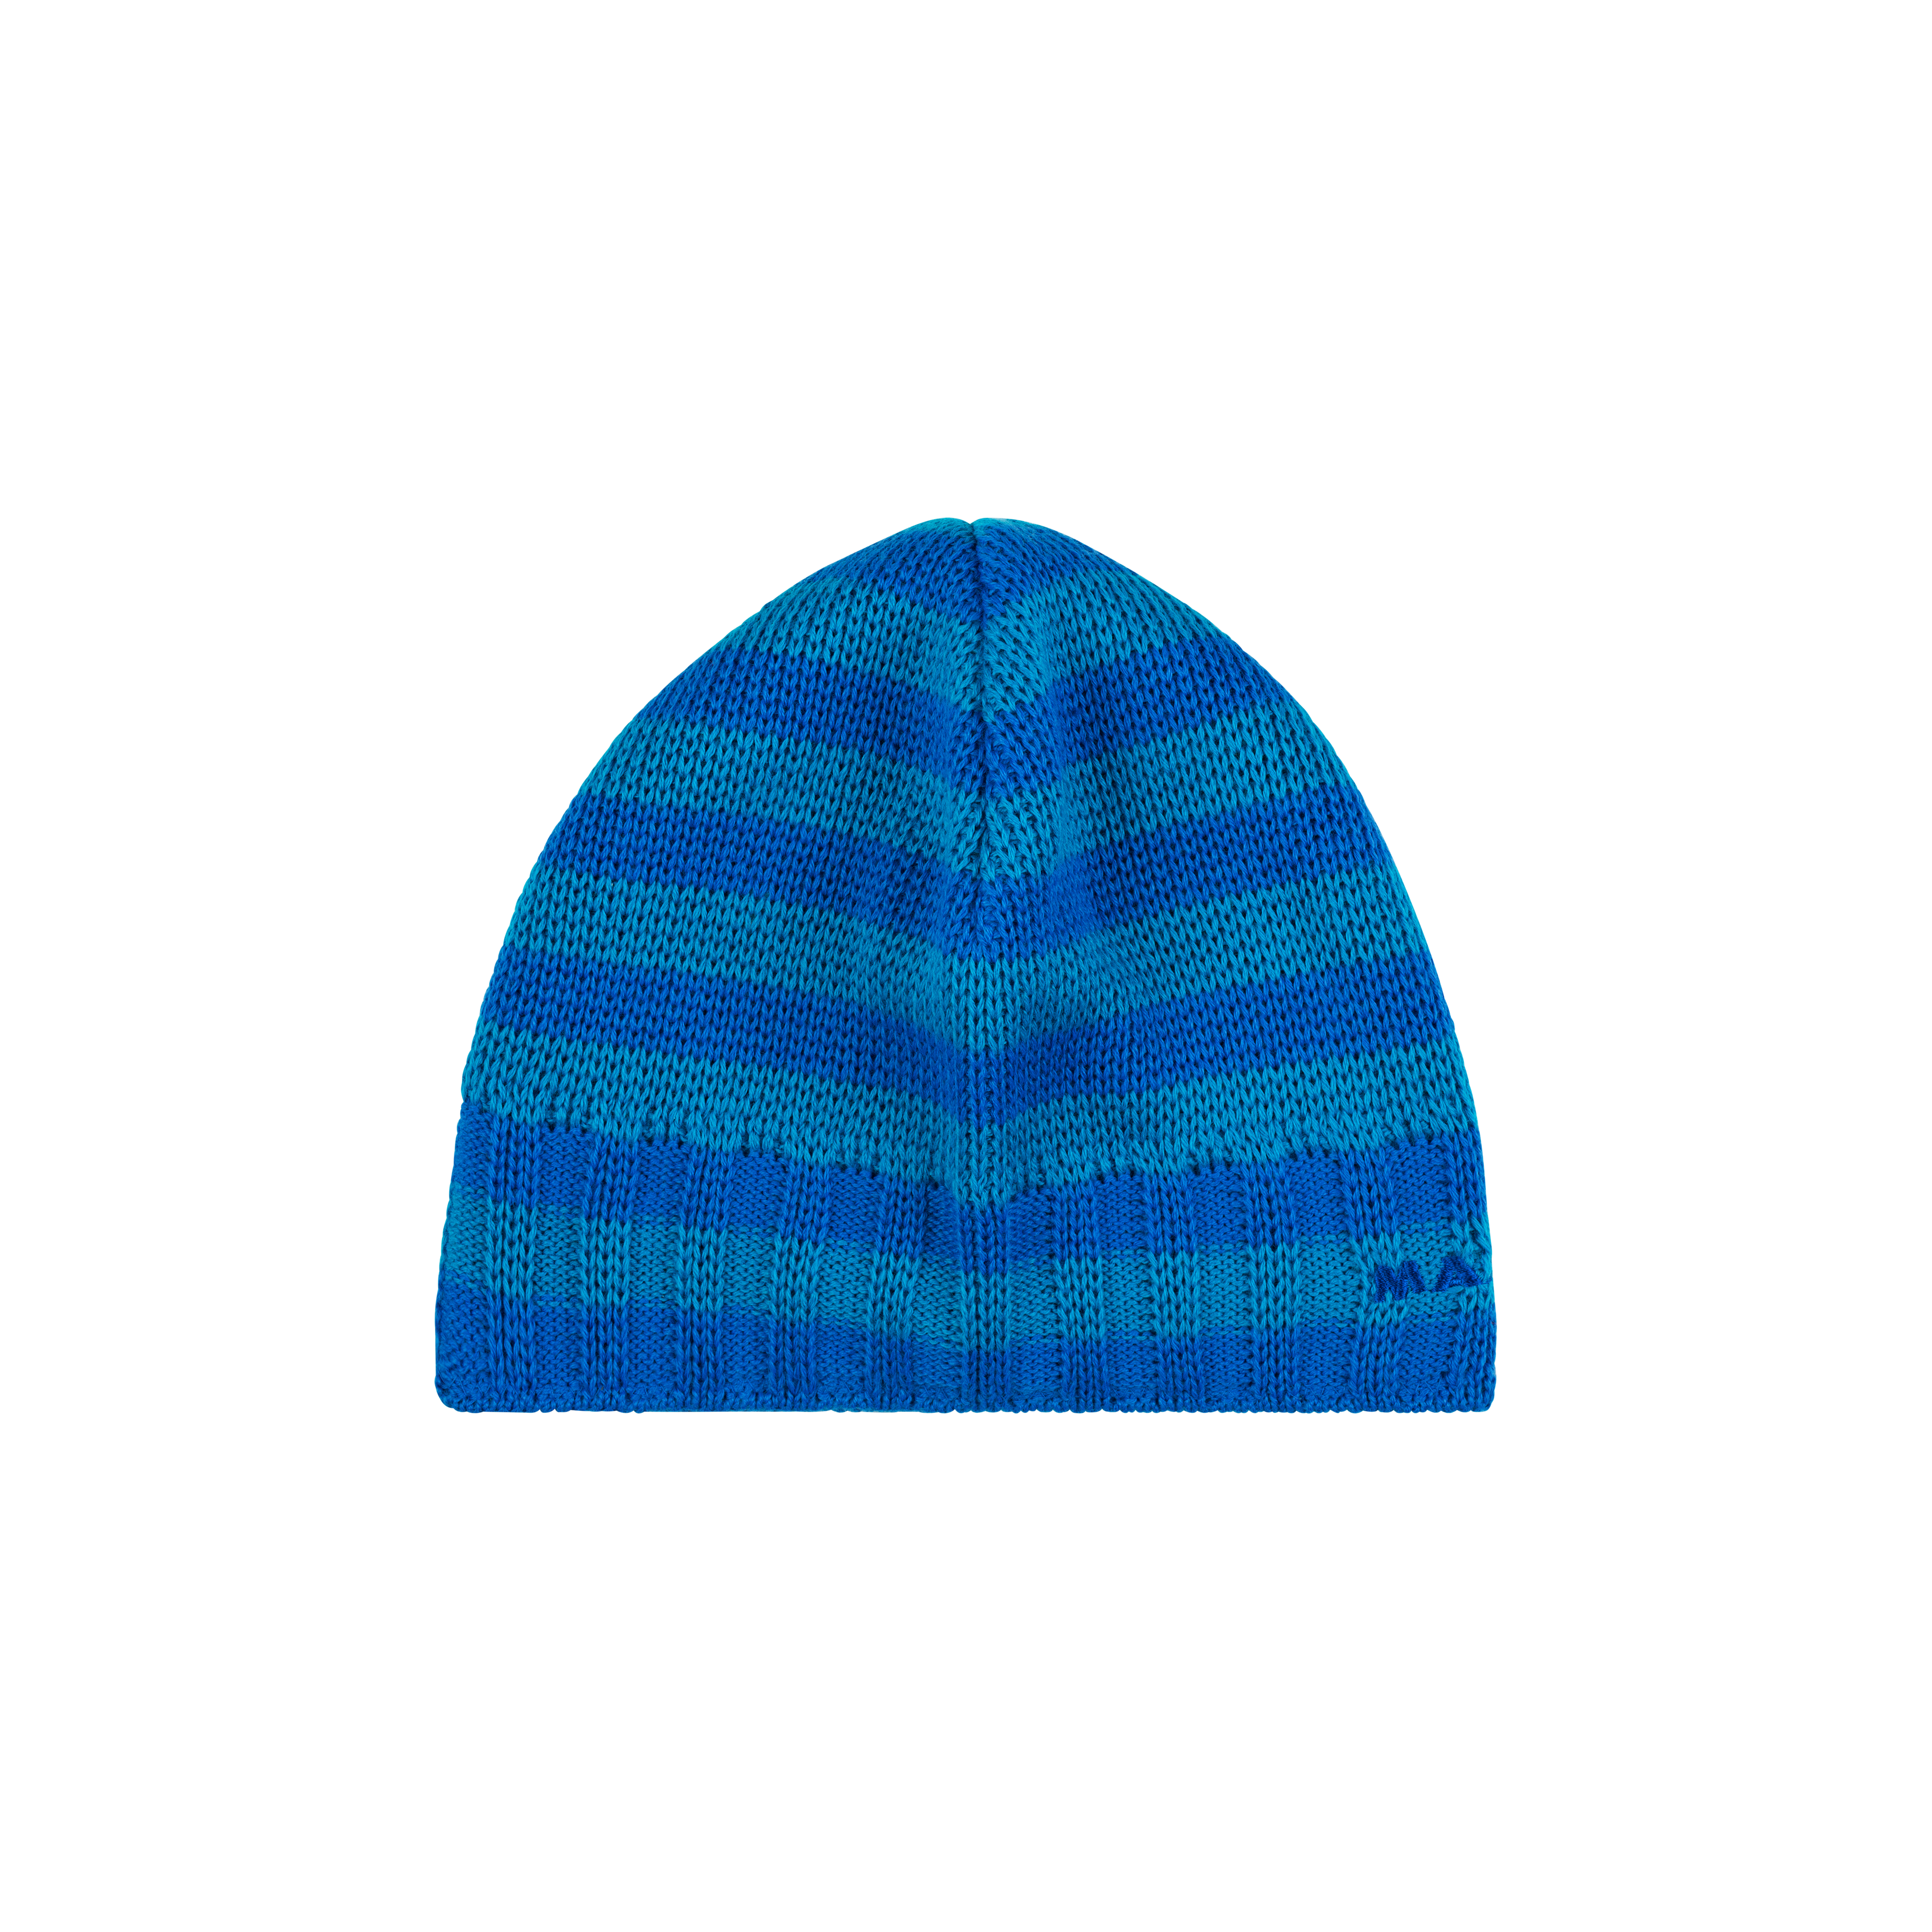 Passion Beanie - ice-gentian, one size thumbnail